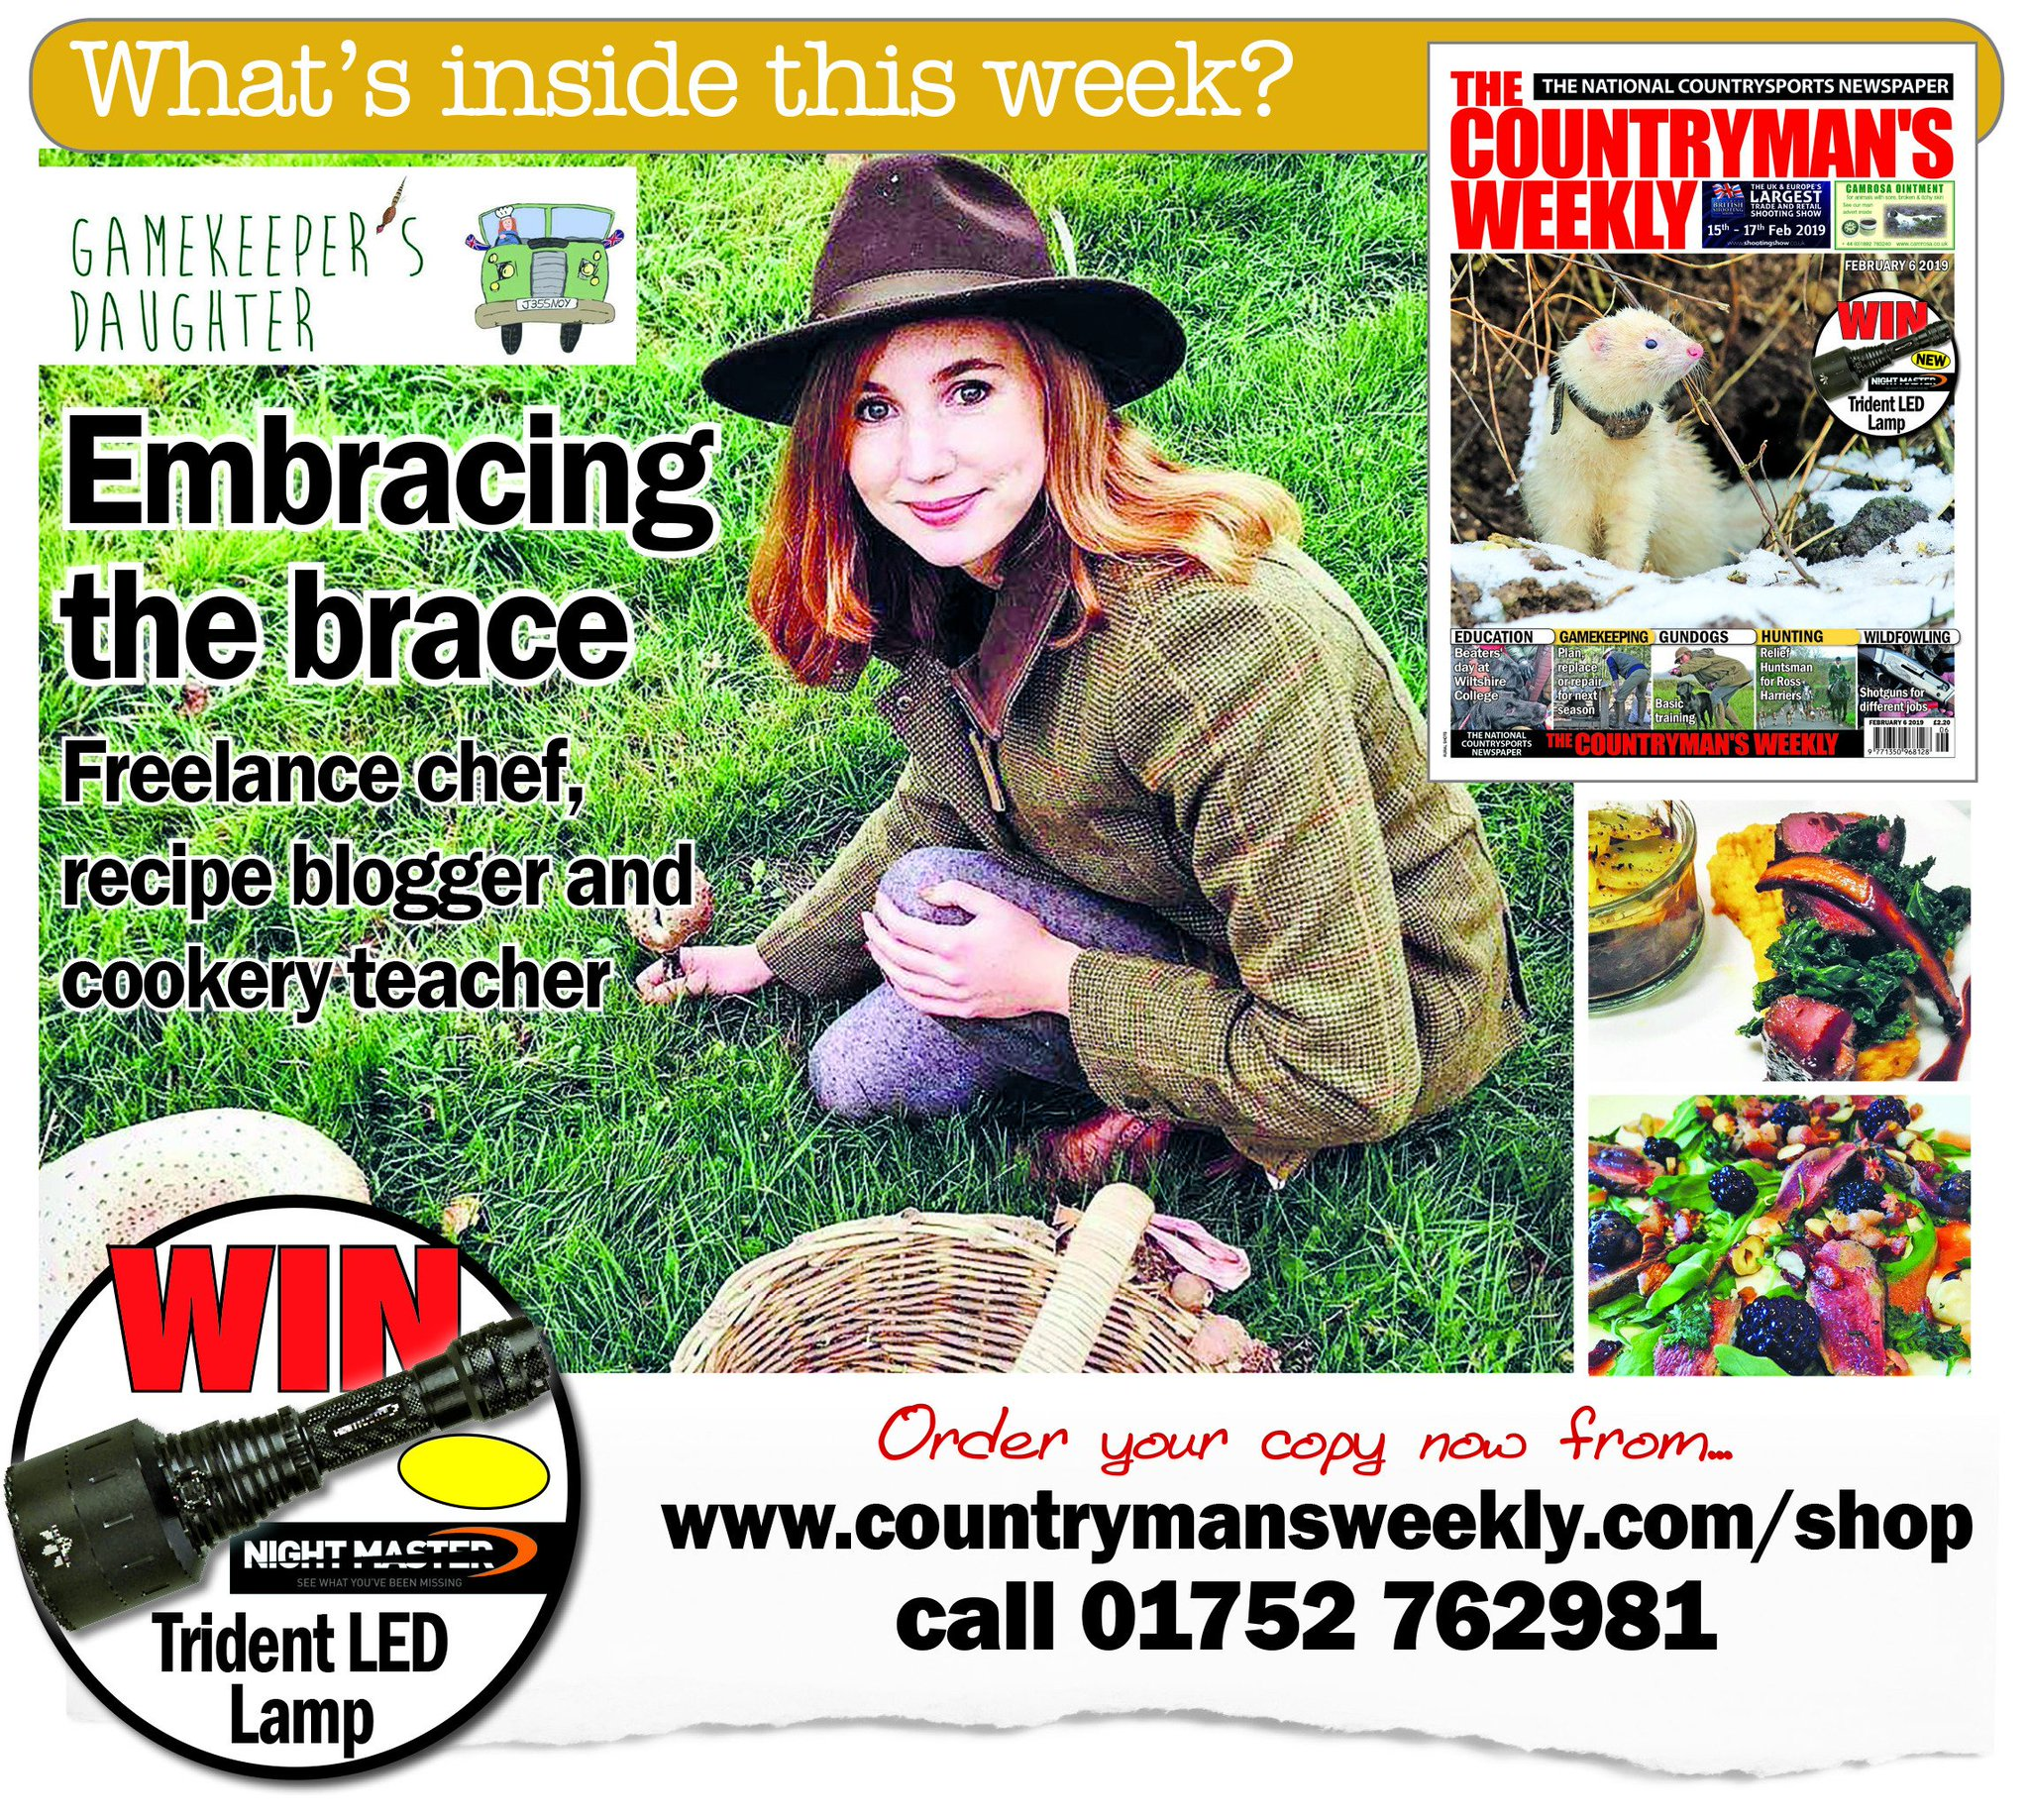 Countrymans Weekly